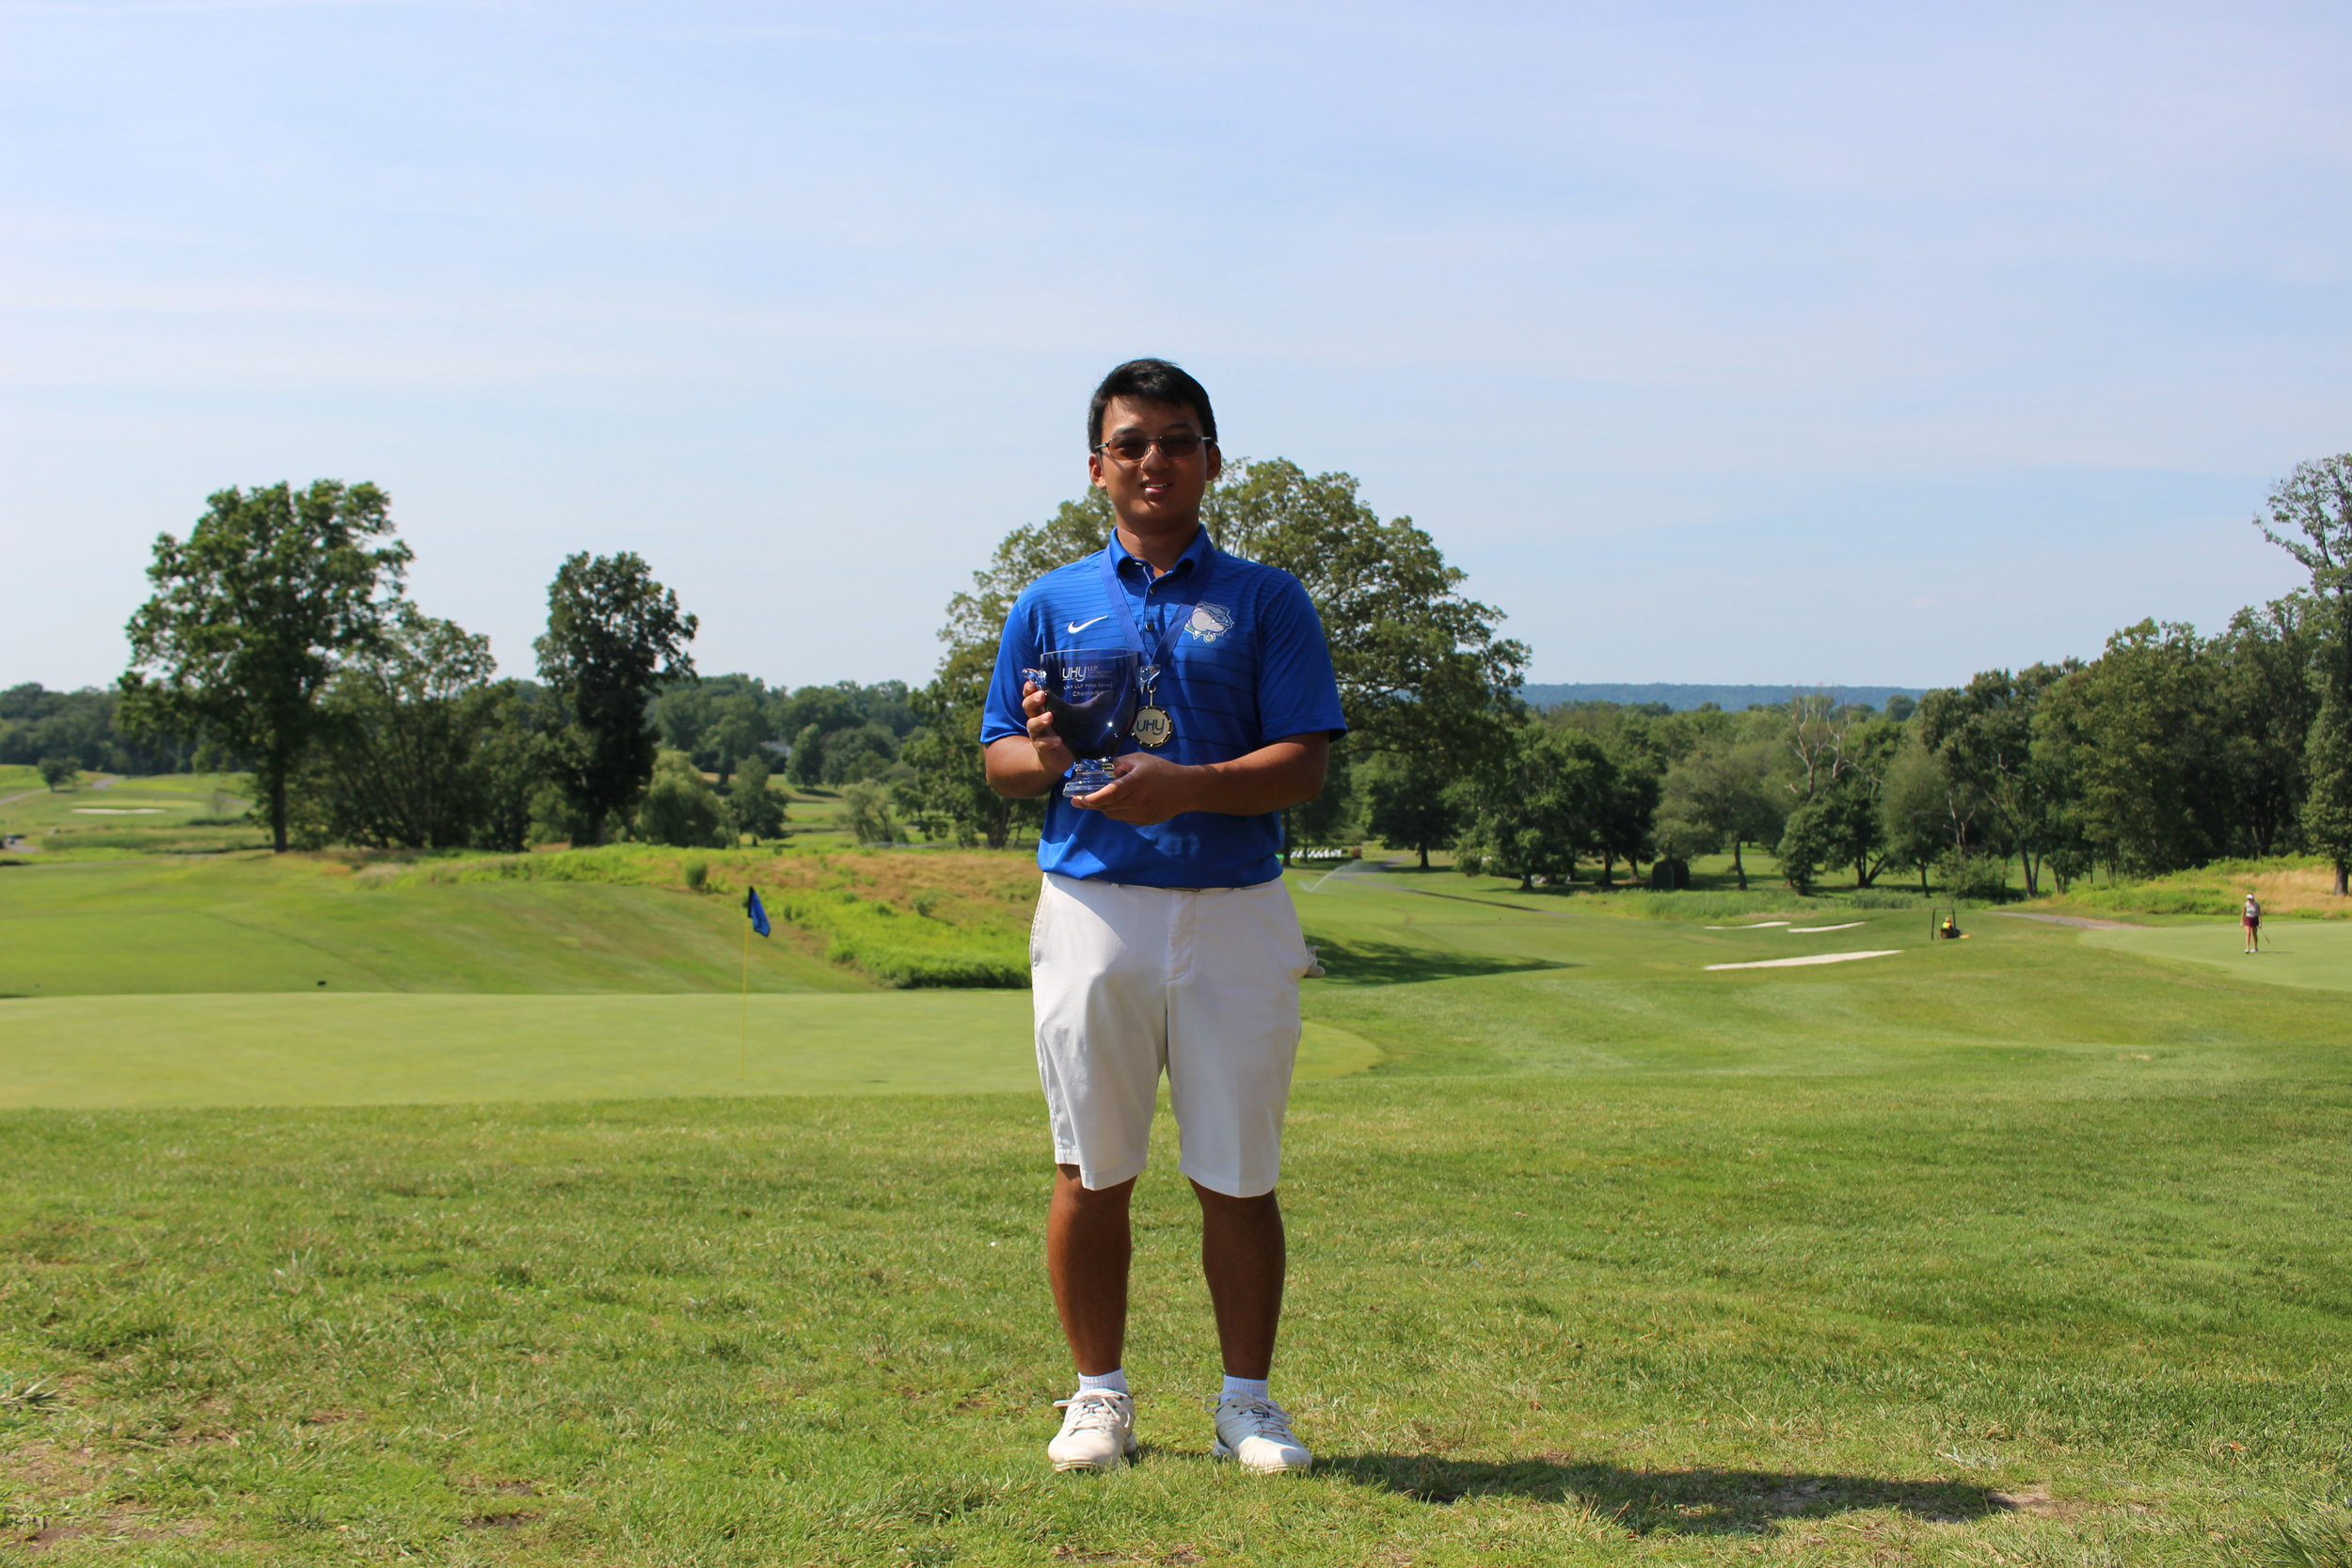 Yida Wang from Potomac, MD was the boys champion, with a 142 total (76-66).